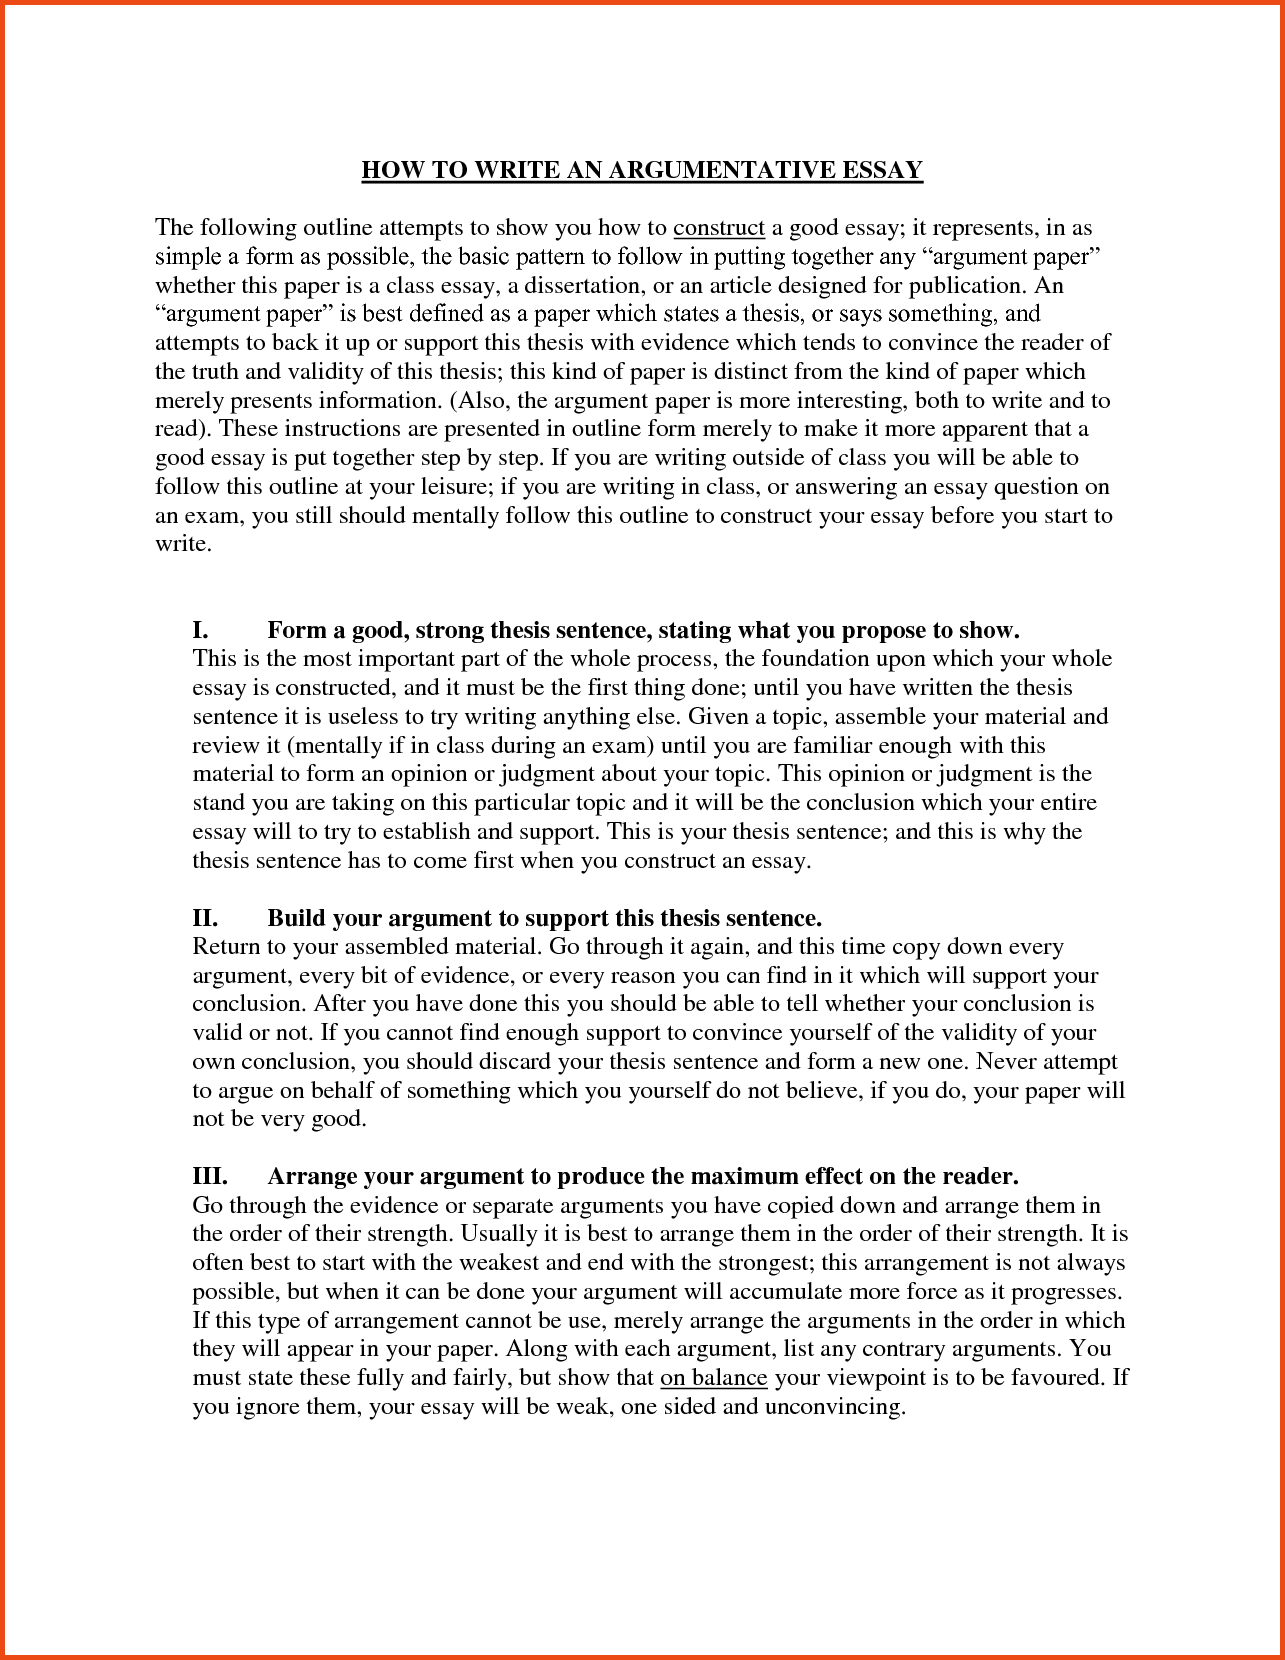 005 Essay Example How To Start An Brilliant Ideas Of Good Ways About Yourself Dissertation Nice Amazing Analysis On A Book With Question Two Books Full